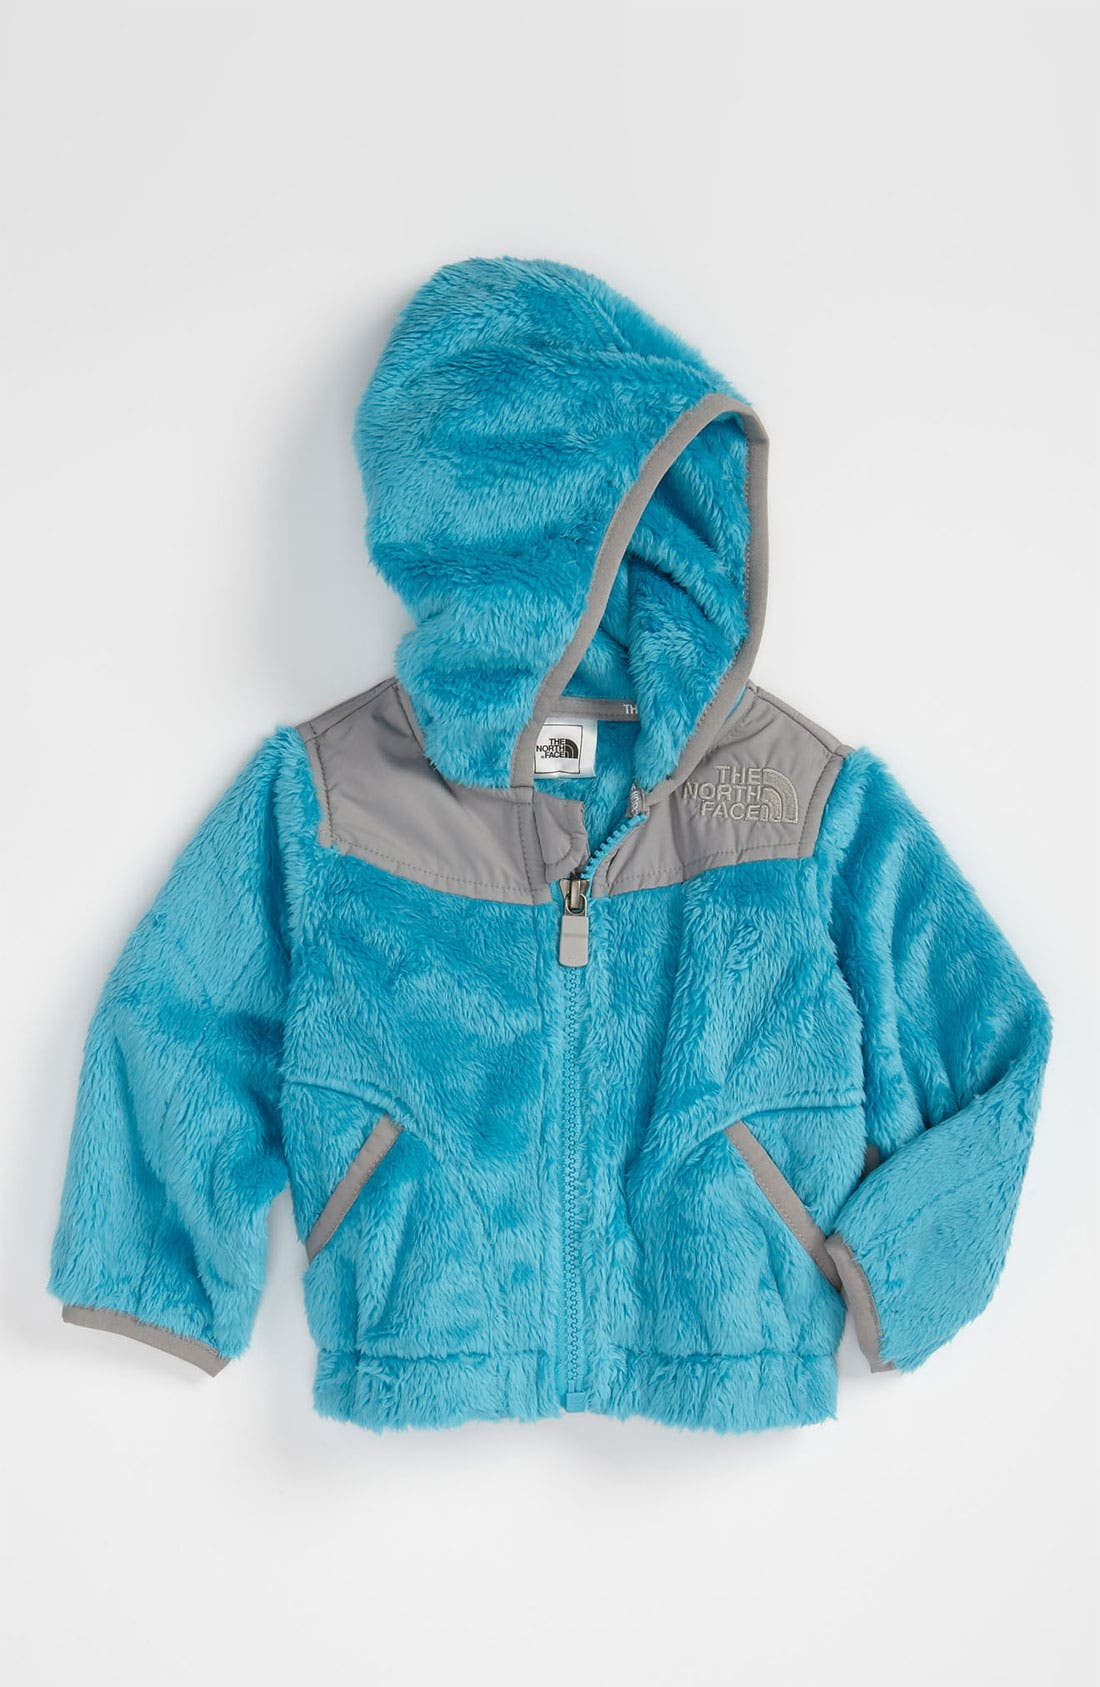 Alternate Image 1 Selected - The North Face 'Oso' Hoodie (Baby Girls)